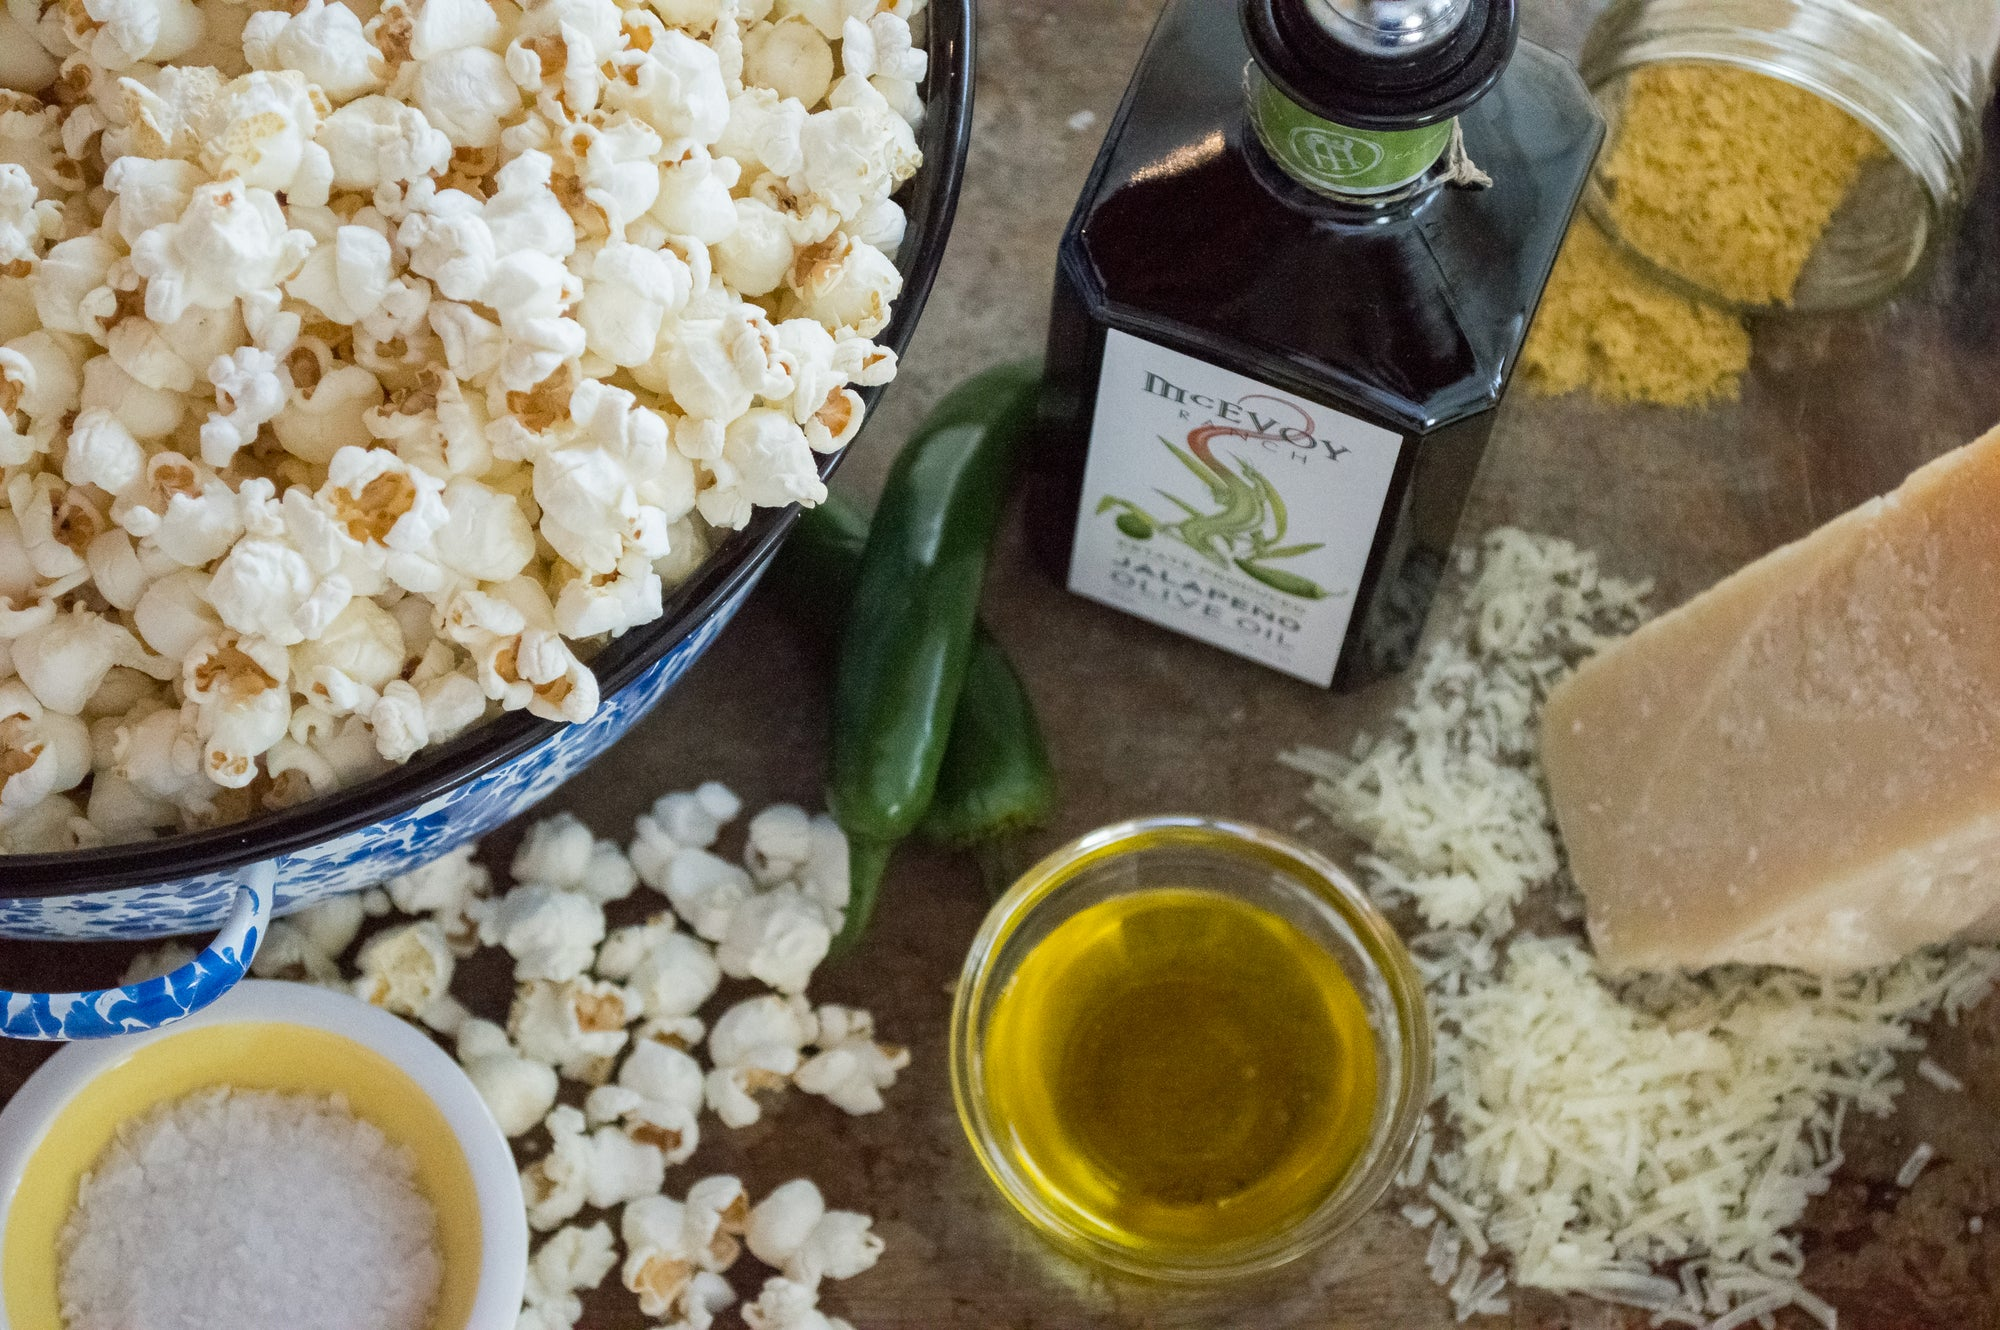 Popcorn with McEvoy Ranch Jalapeno Olive Oil